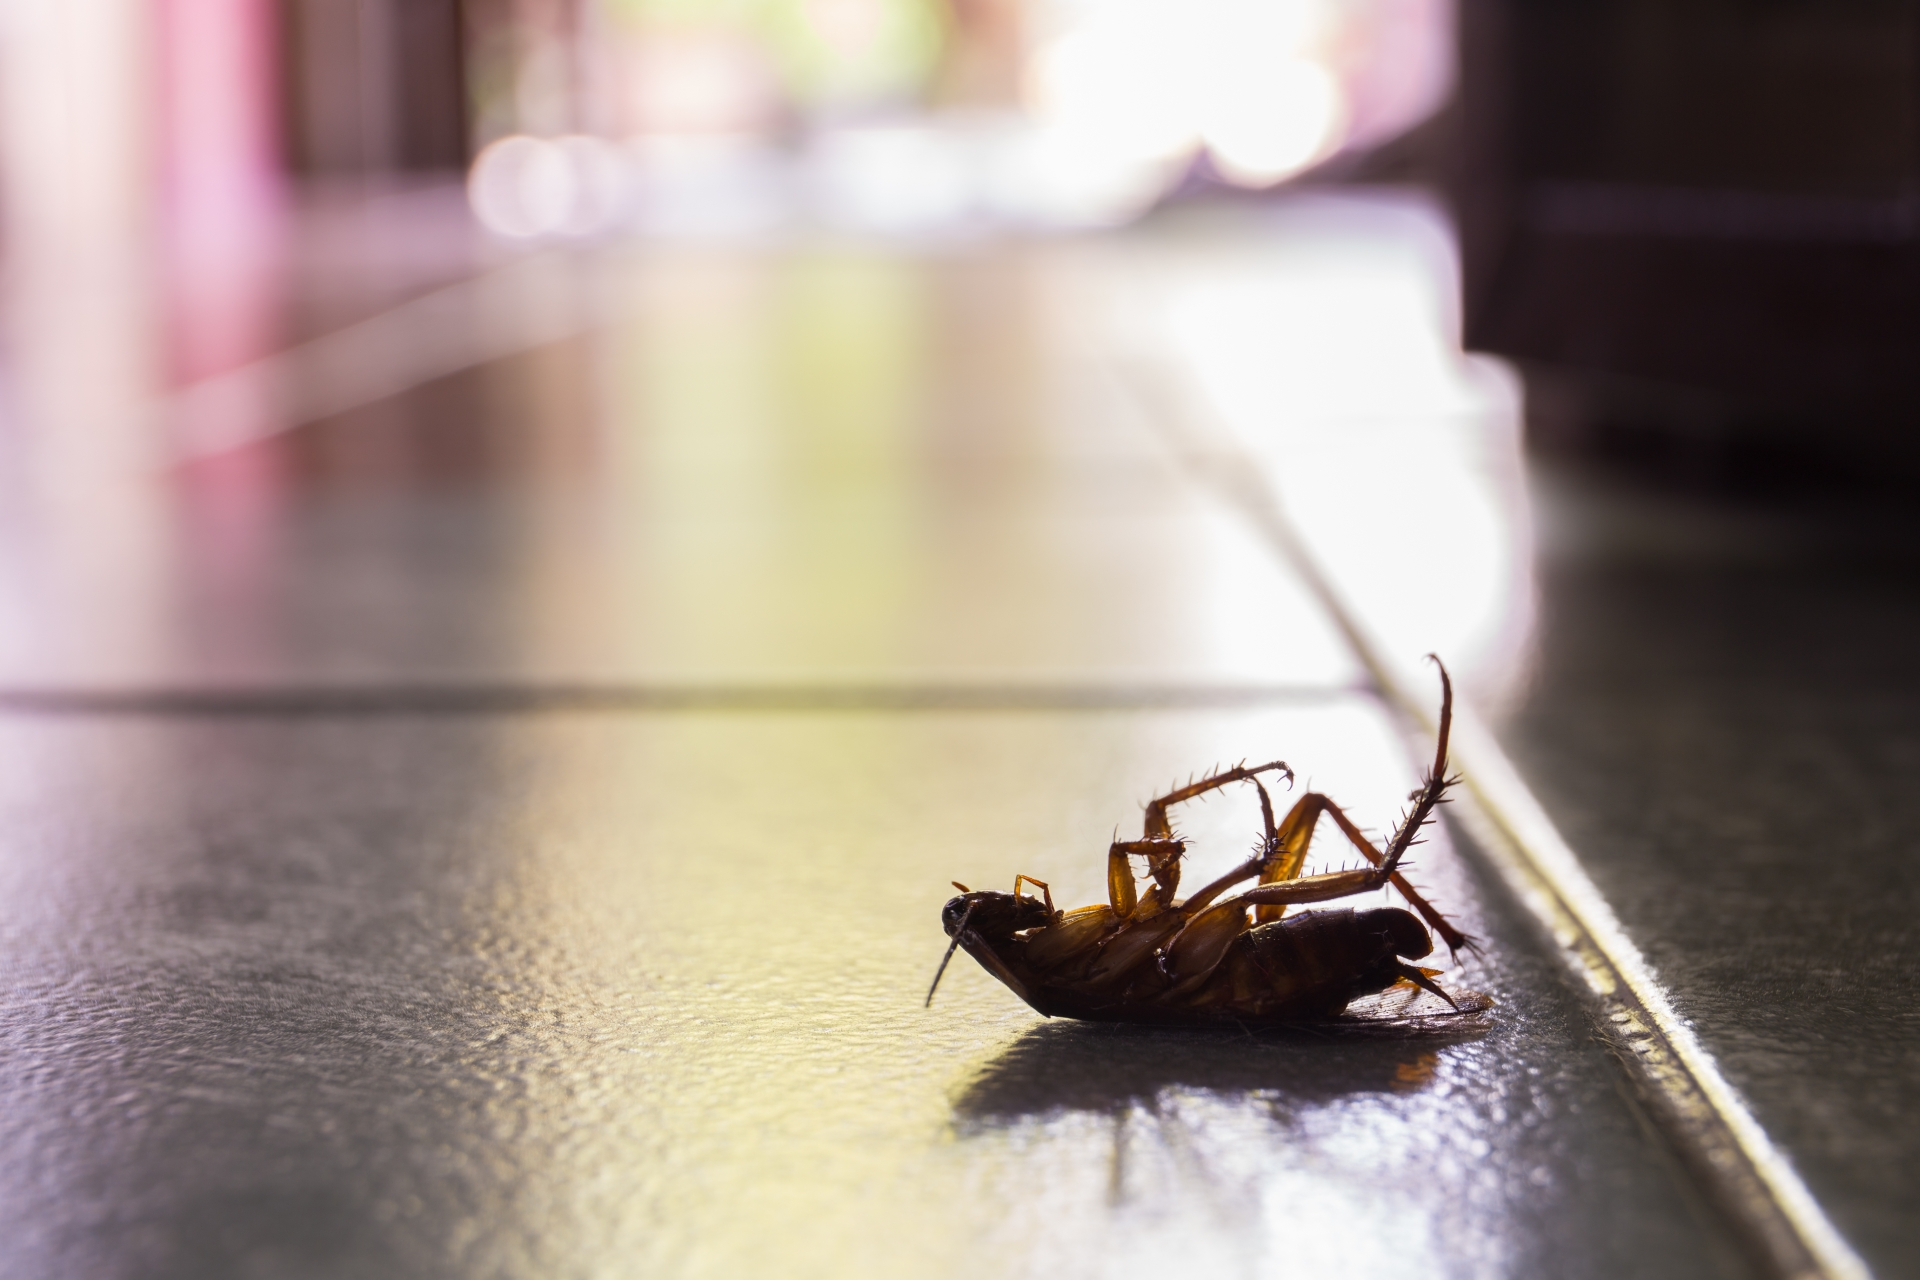 Cockroach Control, Pest Control in Plumstead, SE18. Call Now 020 8166 9746